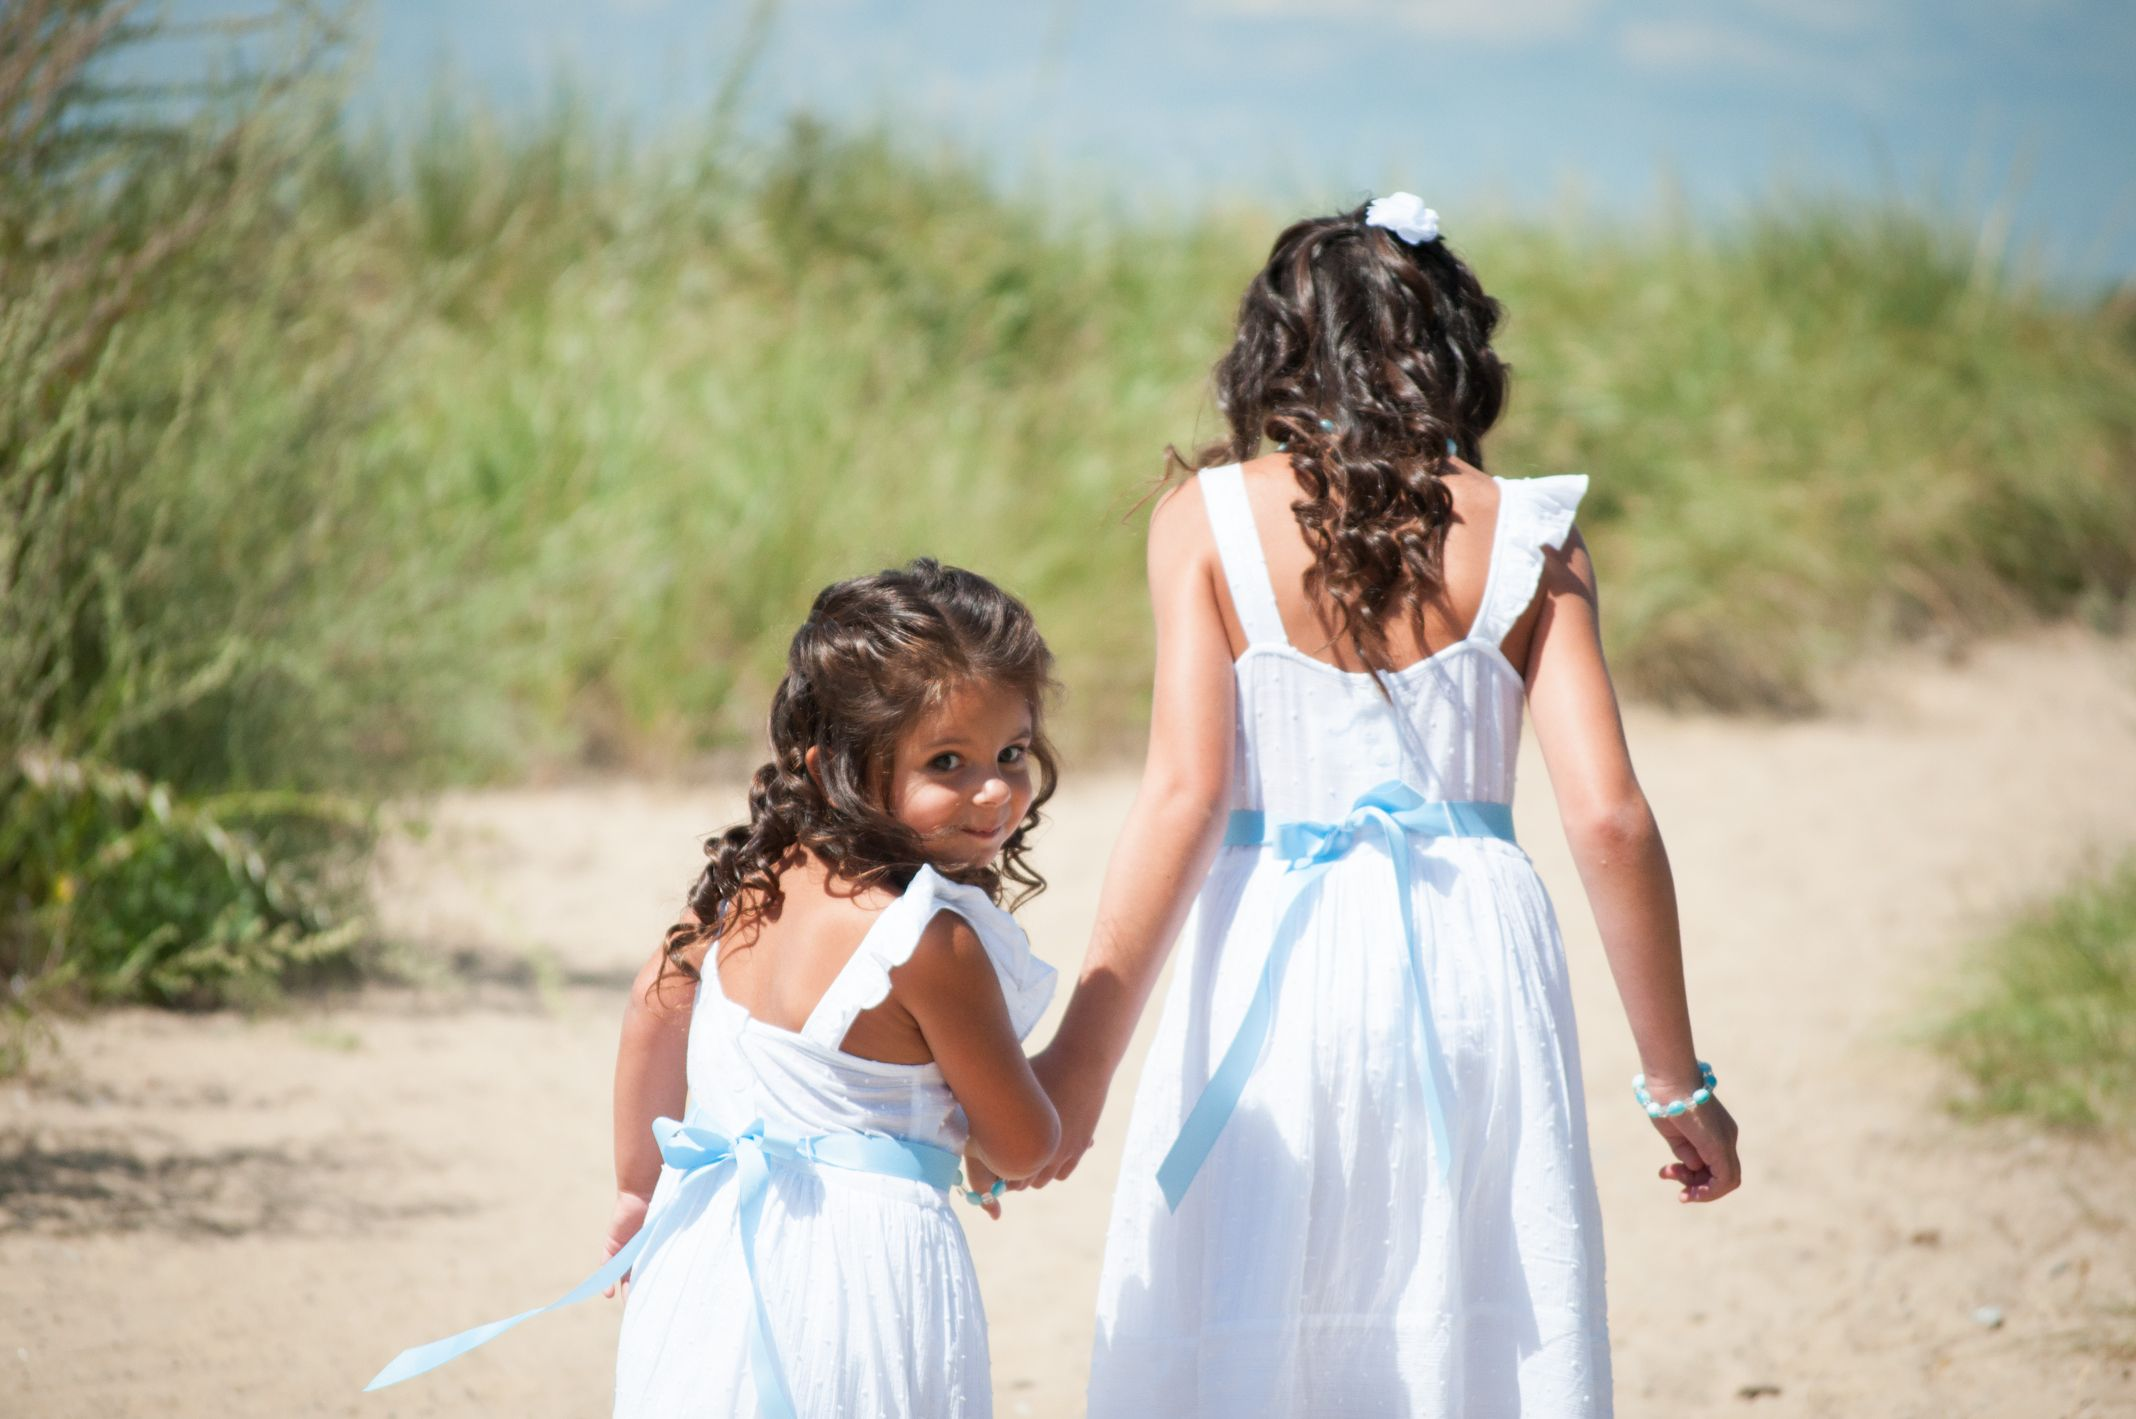 Flower girls white dresses with light blue bows izabella